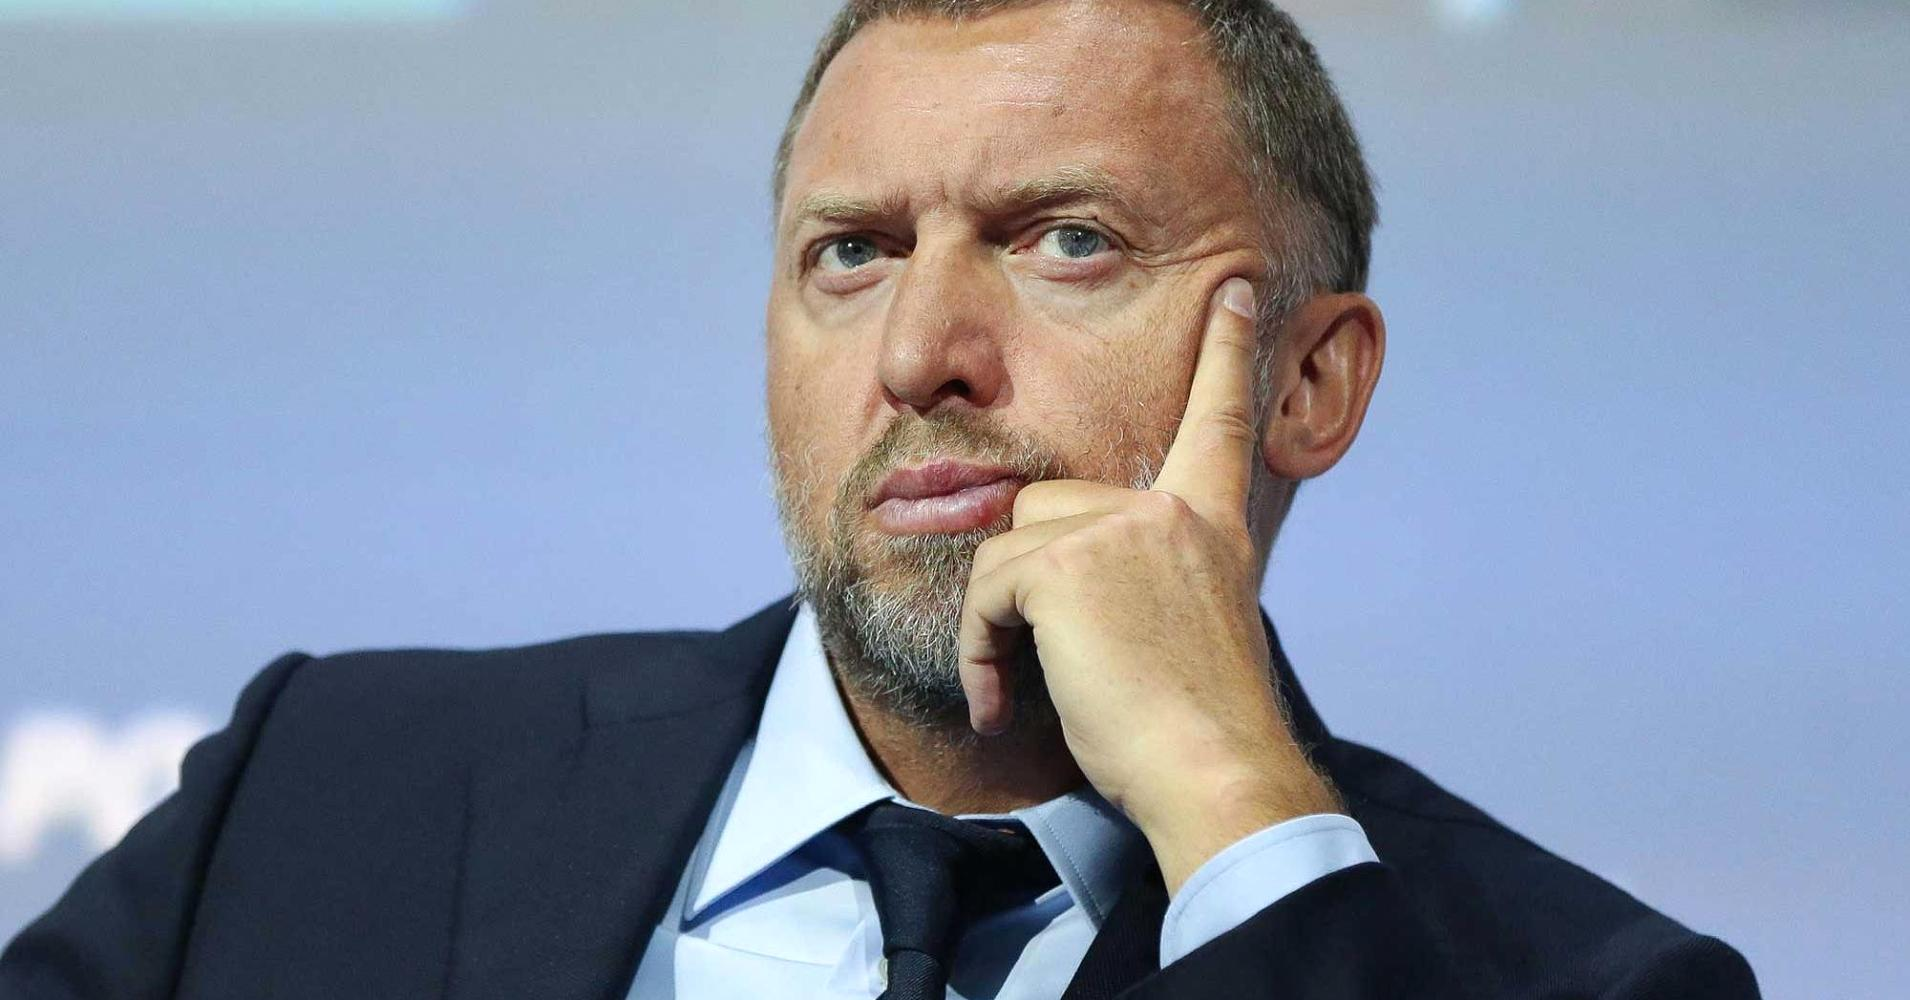 Image (OLEG DERIPASKA IS PICTURE ABOVE. DERIPASKA WAS THE OWNER OF THE LARGEST RUSSIAN INDUSTRIAL GROUP BASIC ELEMENT AND THE PRESIDENT OF EN+ GROUP AND UNITED COMPANY RUSAL, THE SECOND LARGEST ALUMINUM COMPANY IN THE WORLD UNTIL 2018. | SOURCE: BLOOMBERG)